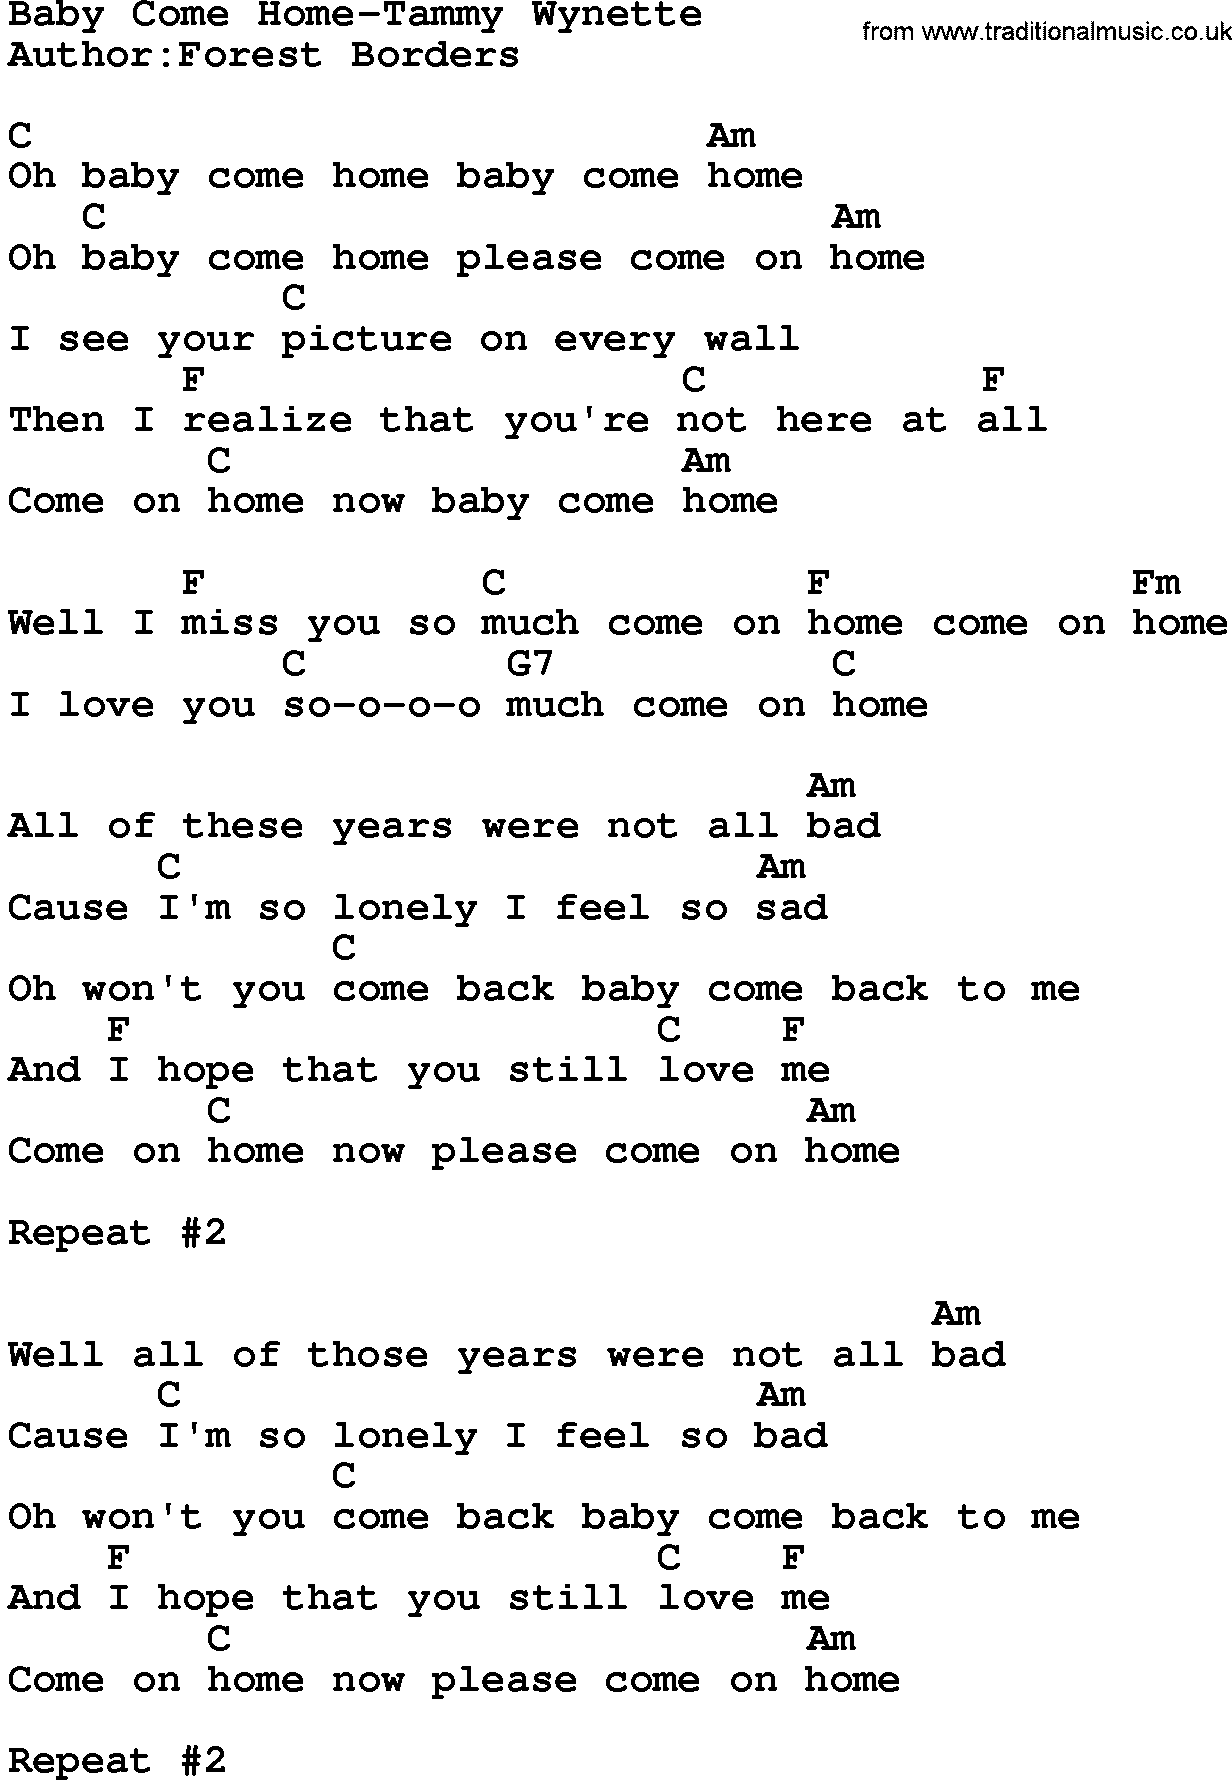 Country Musicbaby Come Home Tammy Wynette Lyrics And Chords